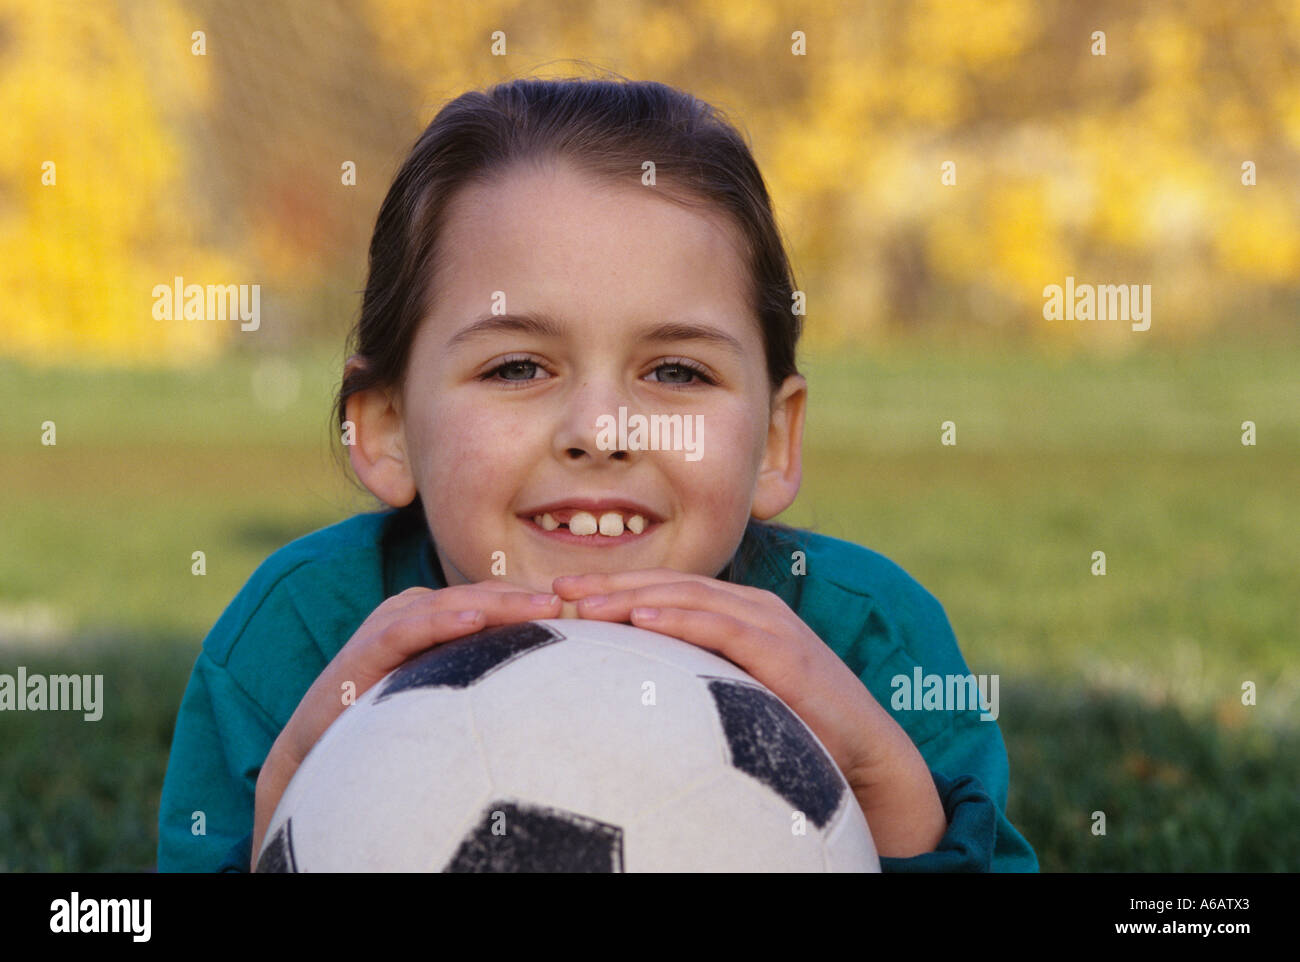 Jeune fille 7 ans holding soccer ball smiling portrait de l'appareil photo dans l'État de Washington, USA M. Woodinville Photo Stock